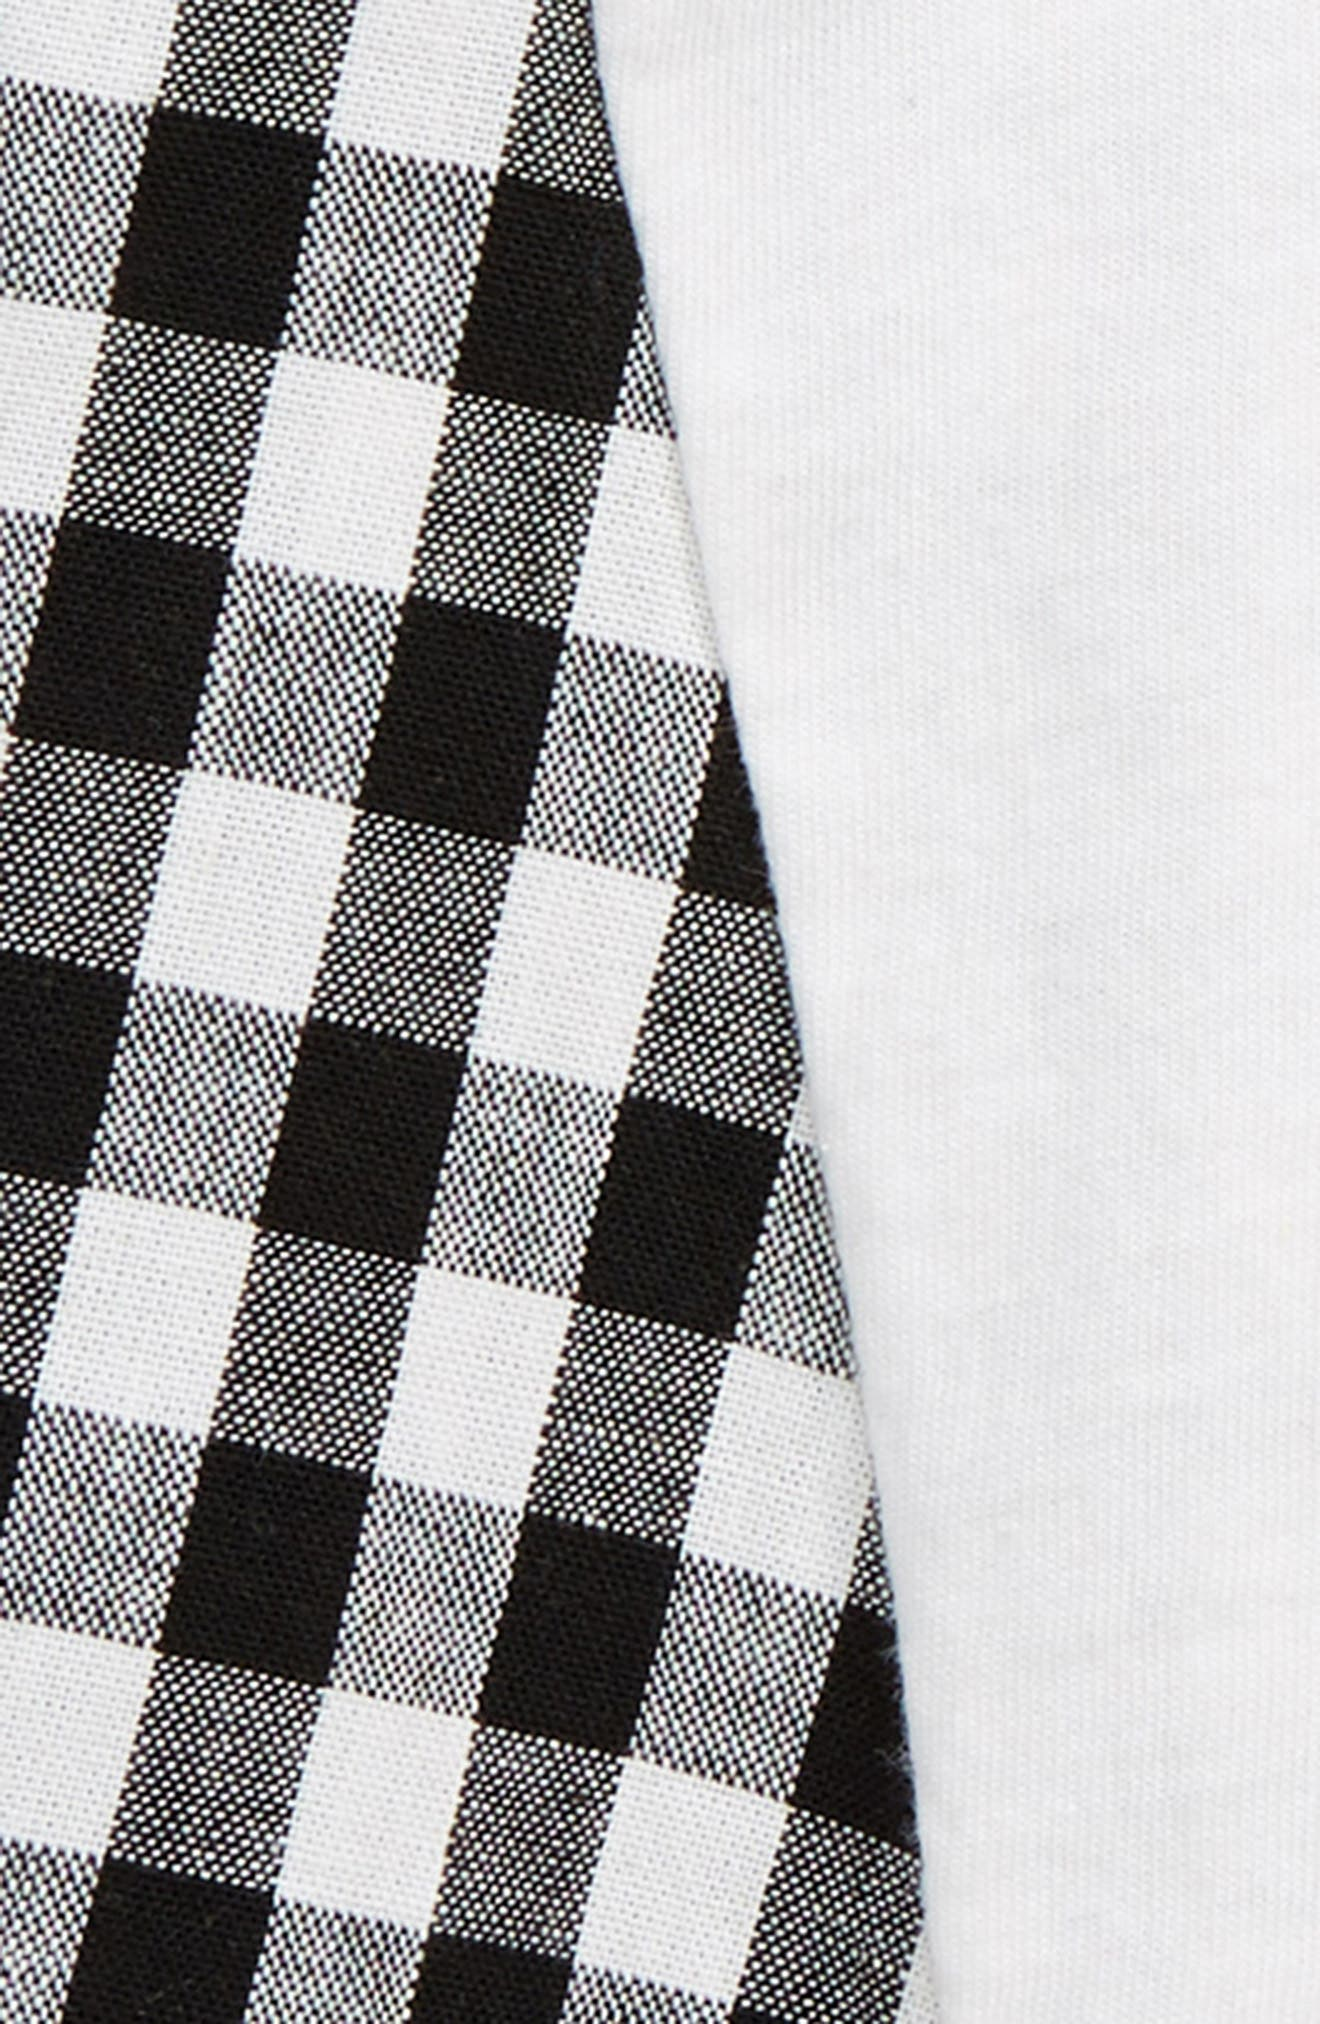 Jaoh Love Check Top,                             Alternate thumbnail 3, color,                             WHITE/ BLACK CHECK